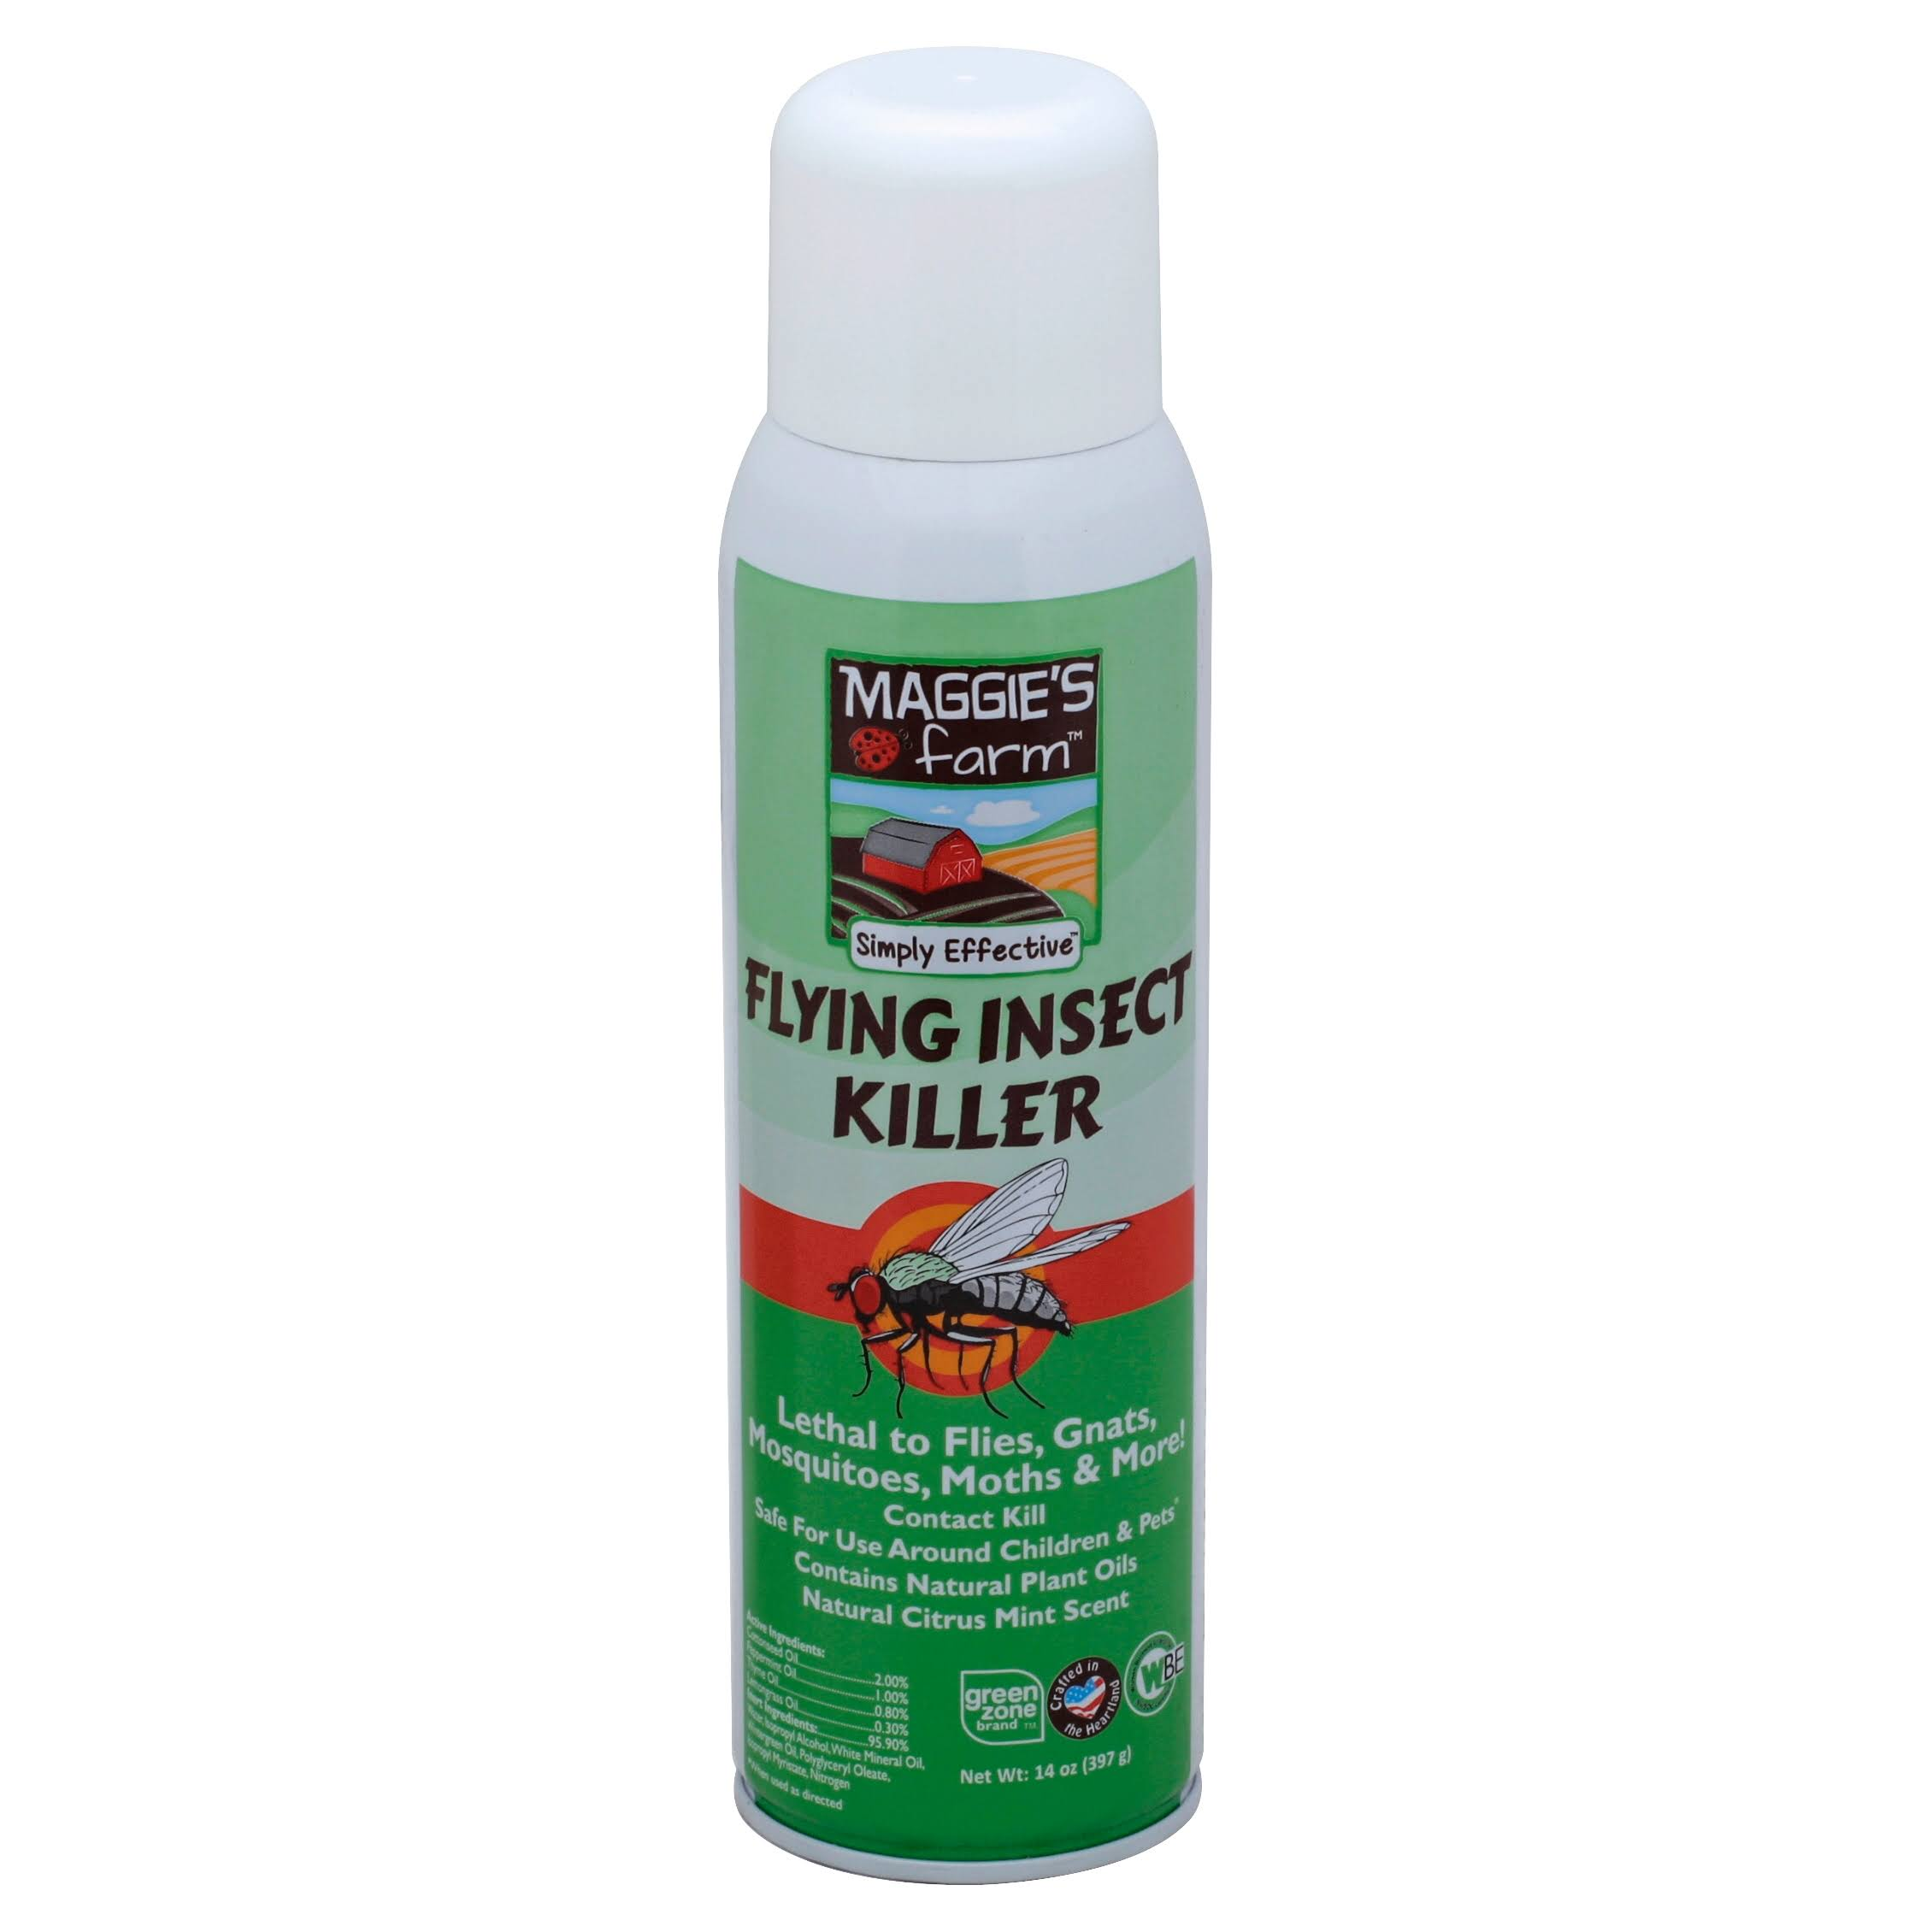 Maggie's Farm Flying Insect Killer - 14oz